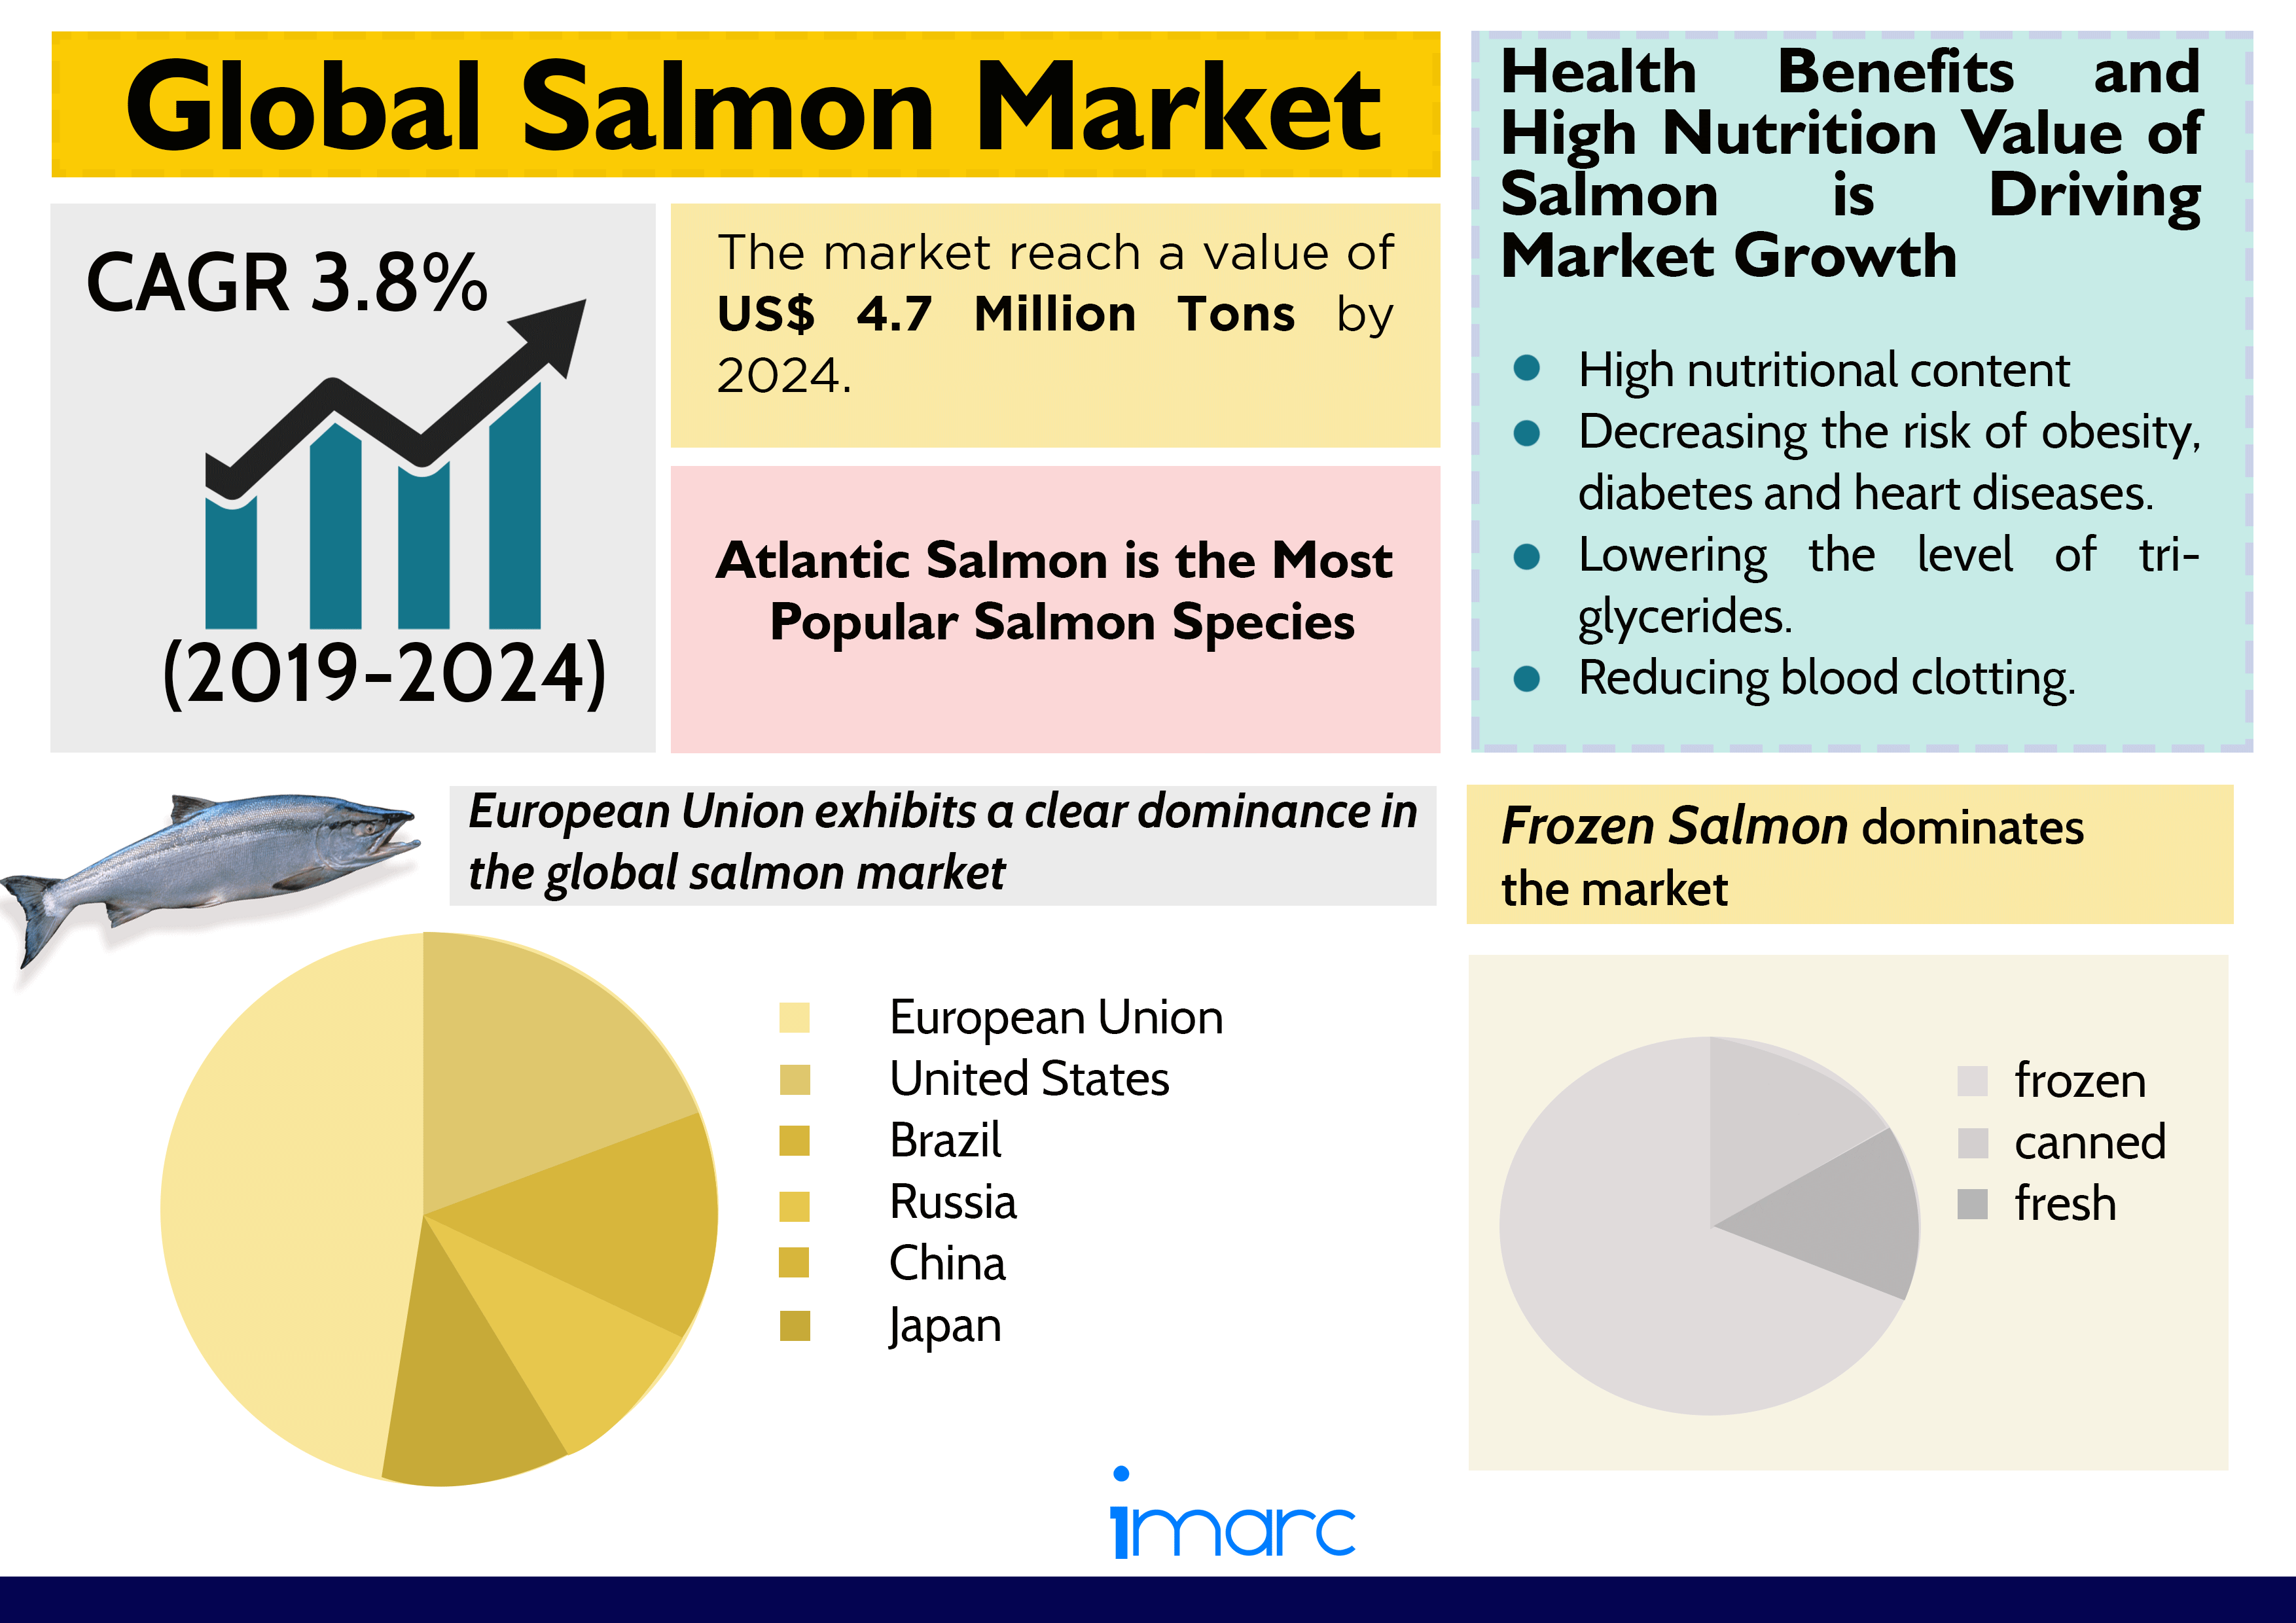 Global Salmon Market Driven by Expansion of Product Line by